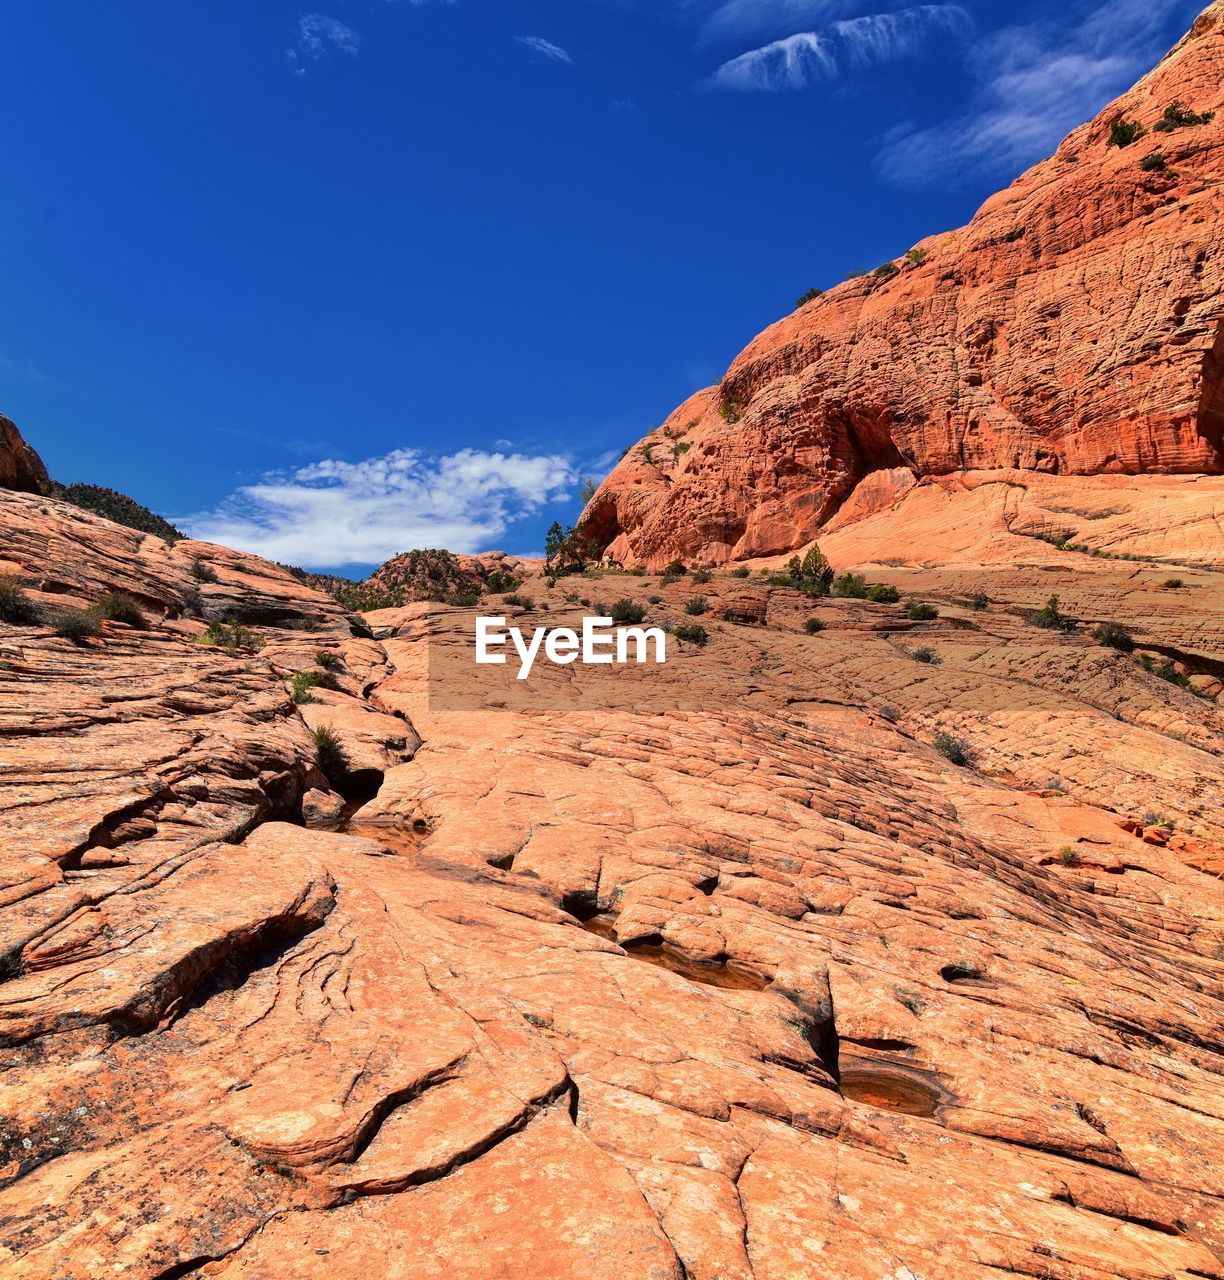 rock, rock - object, rock formation, sky, scenics - nature, solid, non-urban scene, tranquil scene, beauty in nature, tranquility, physical geography, geology, nature, no people, day, blue, travel destinations, landscape, sunlight, remote, arid climate, climate, eroded, outdoors, formation, sandstone